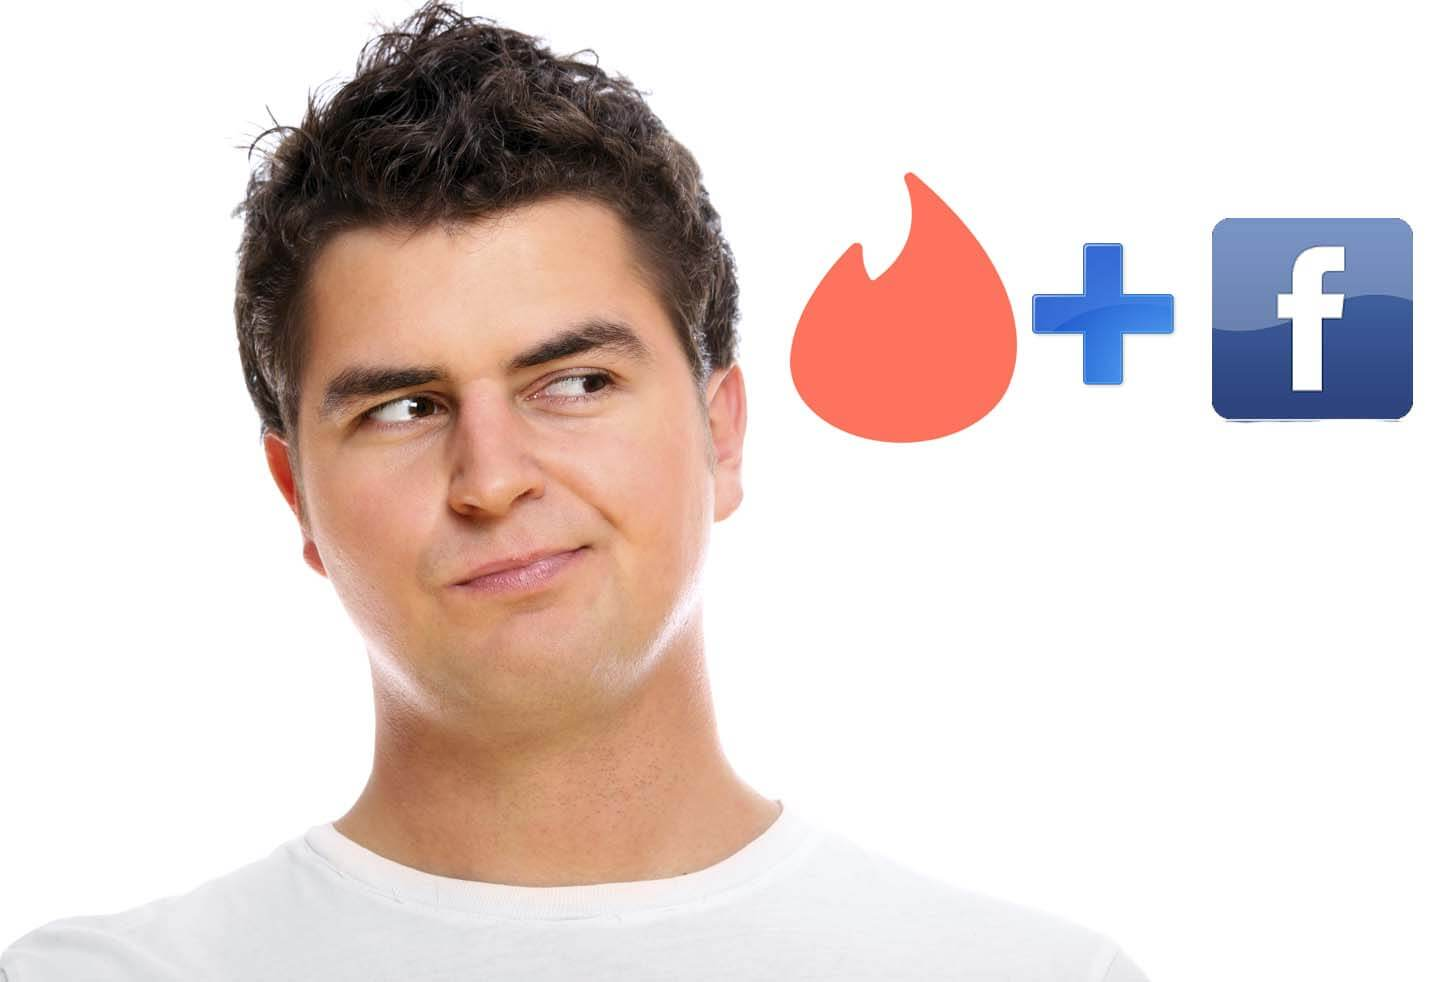 why tinder linked with fb